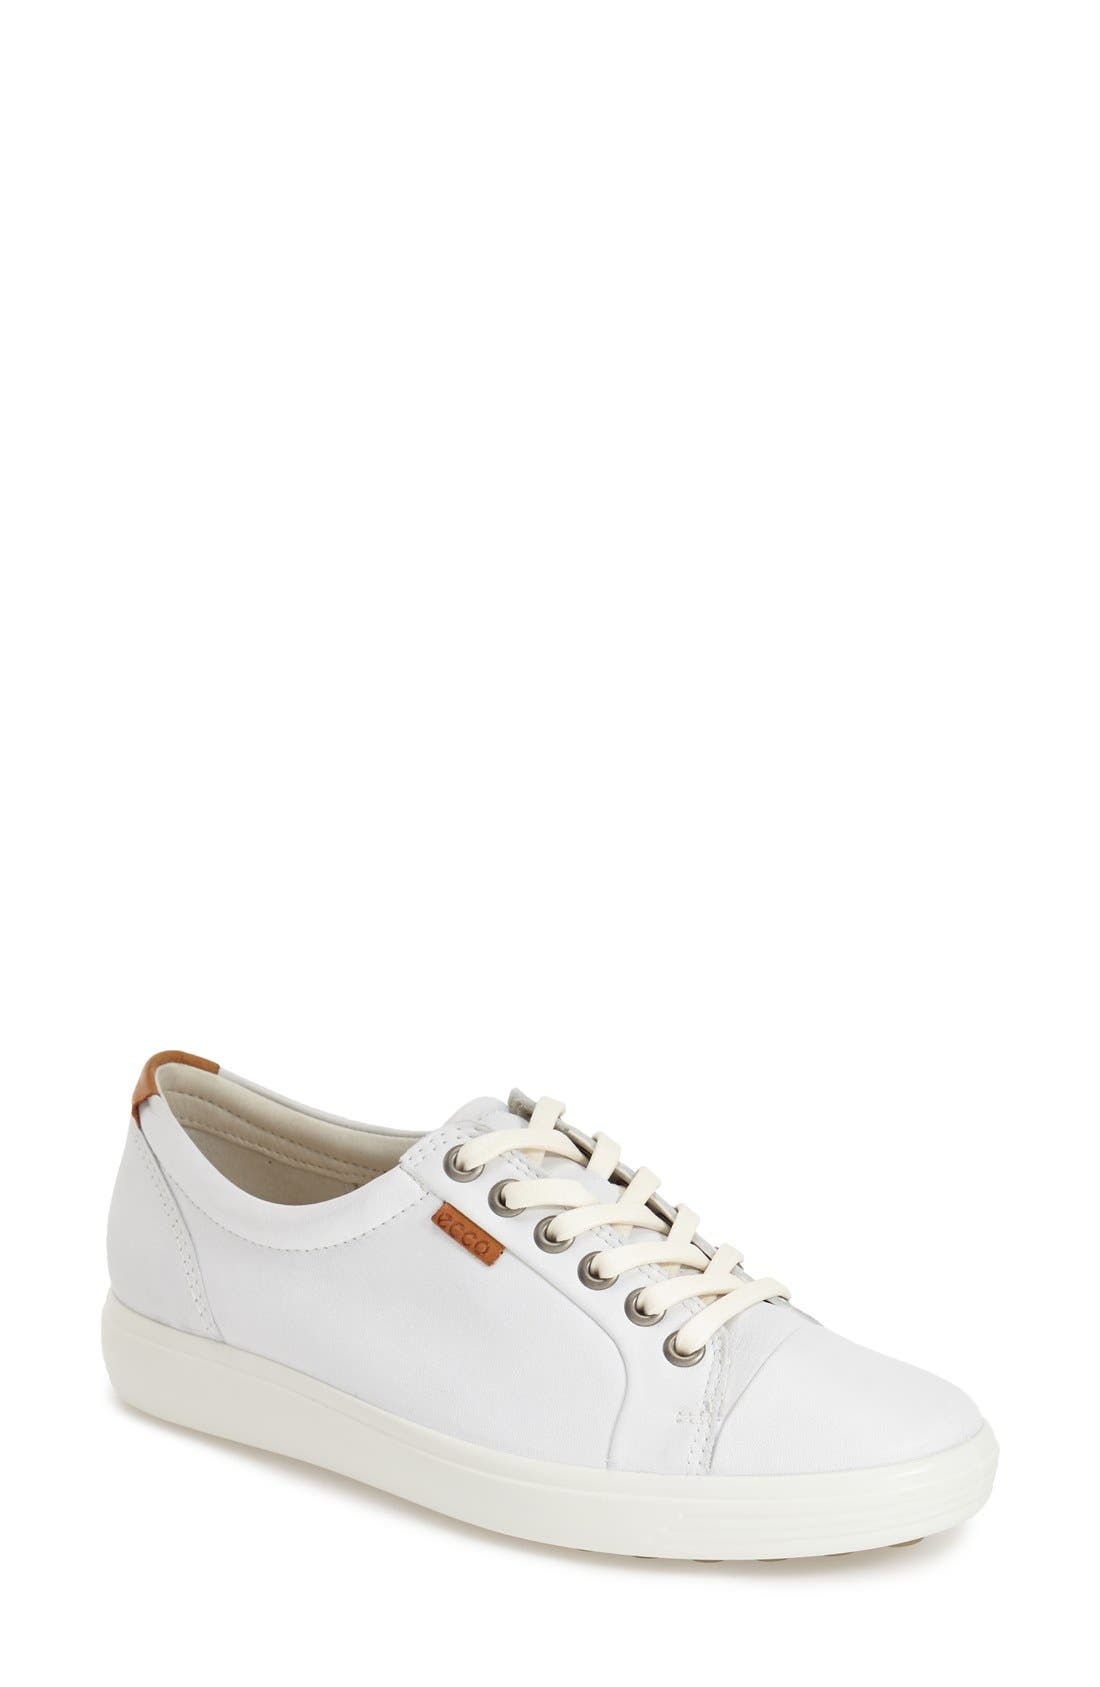 Soft 7 Sneaker,                             Main thumbnail 1, color,                             White